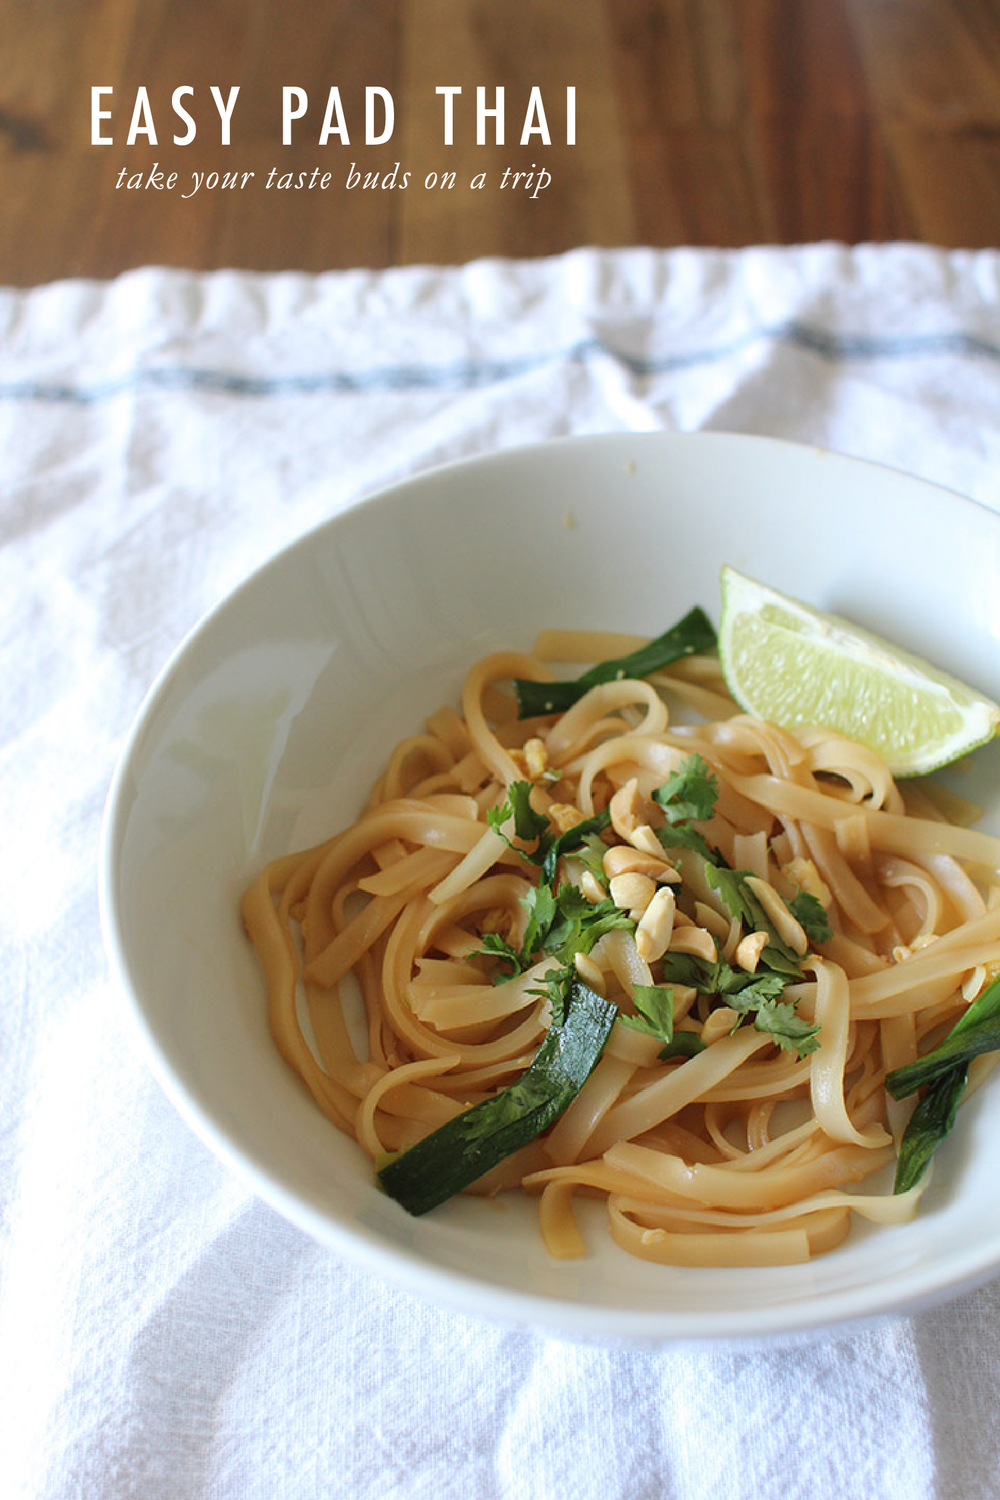 Easy Pad Thai | That's Pretty Ace